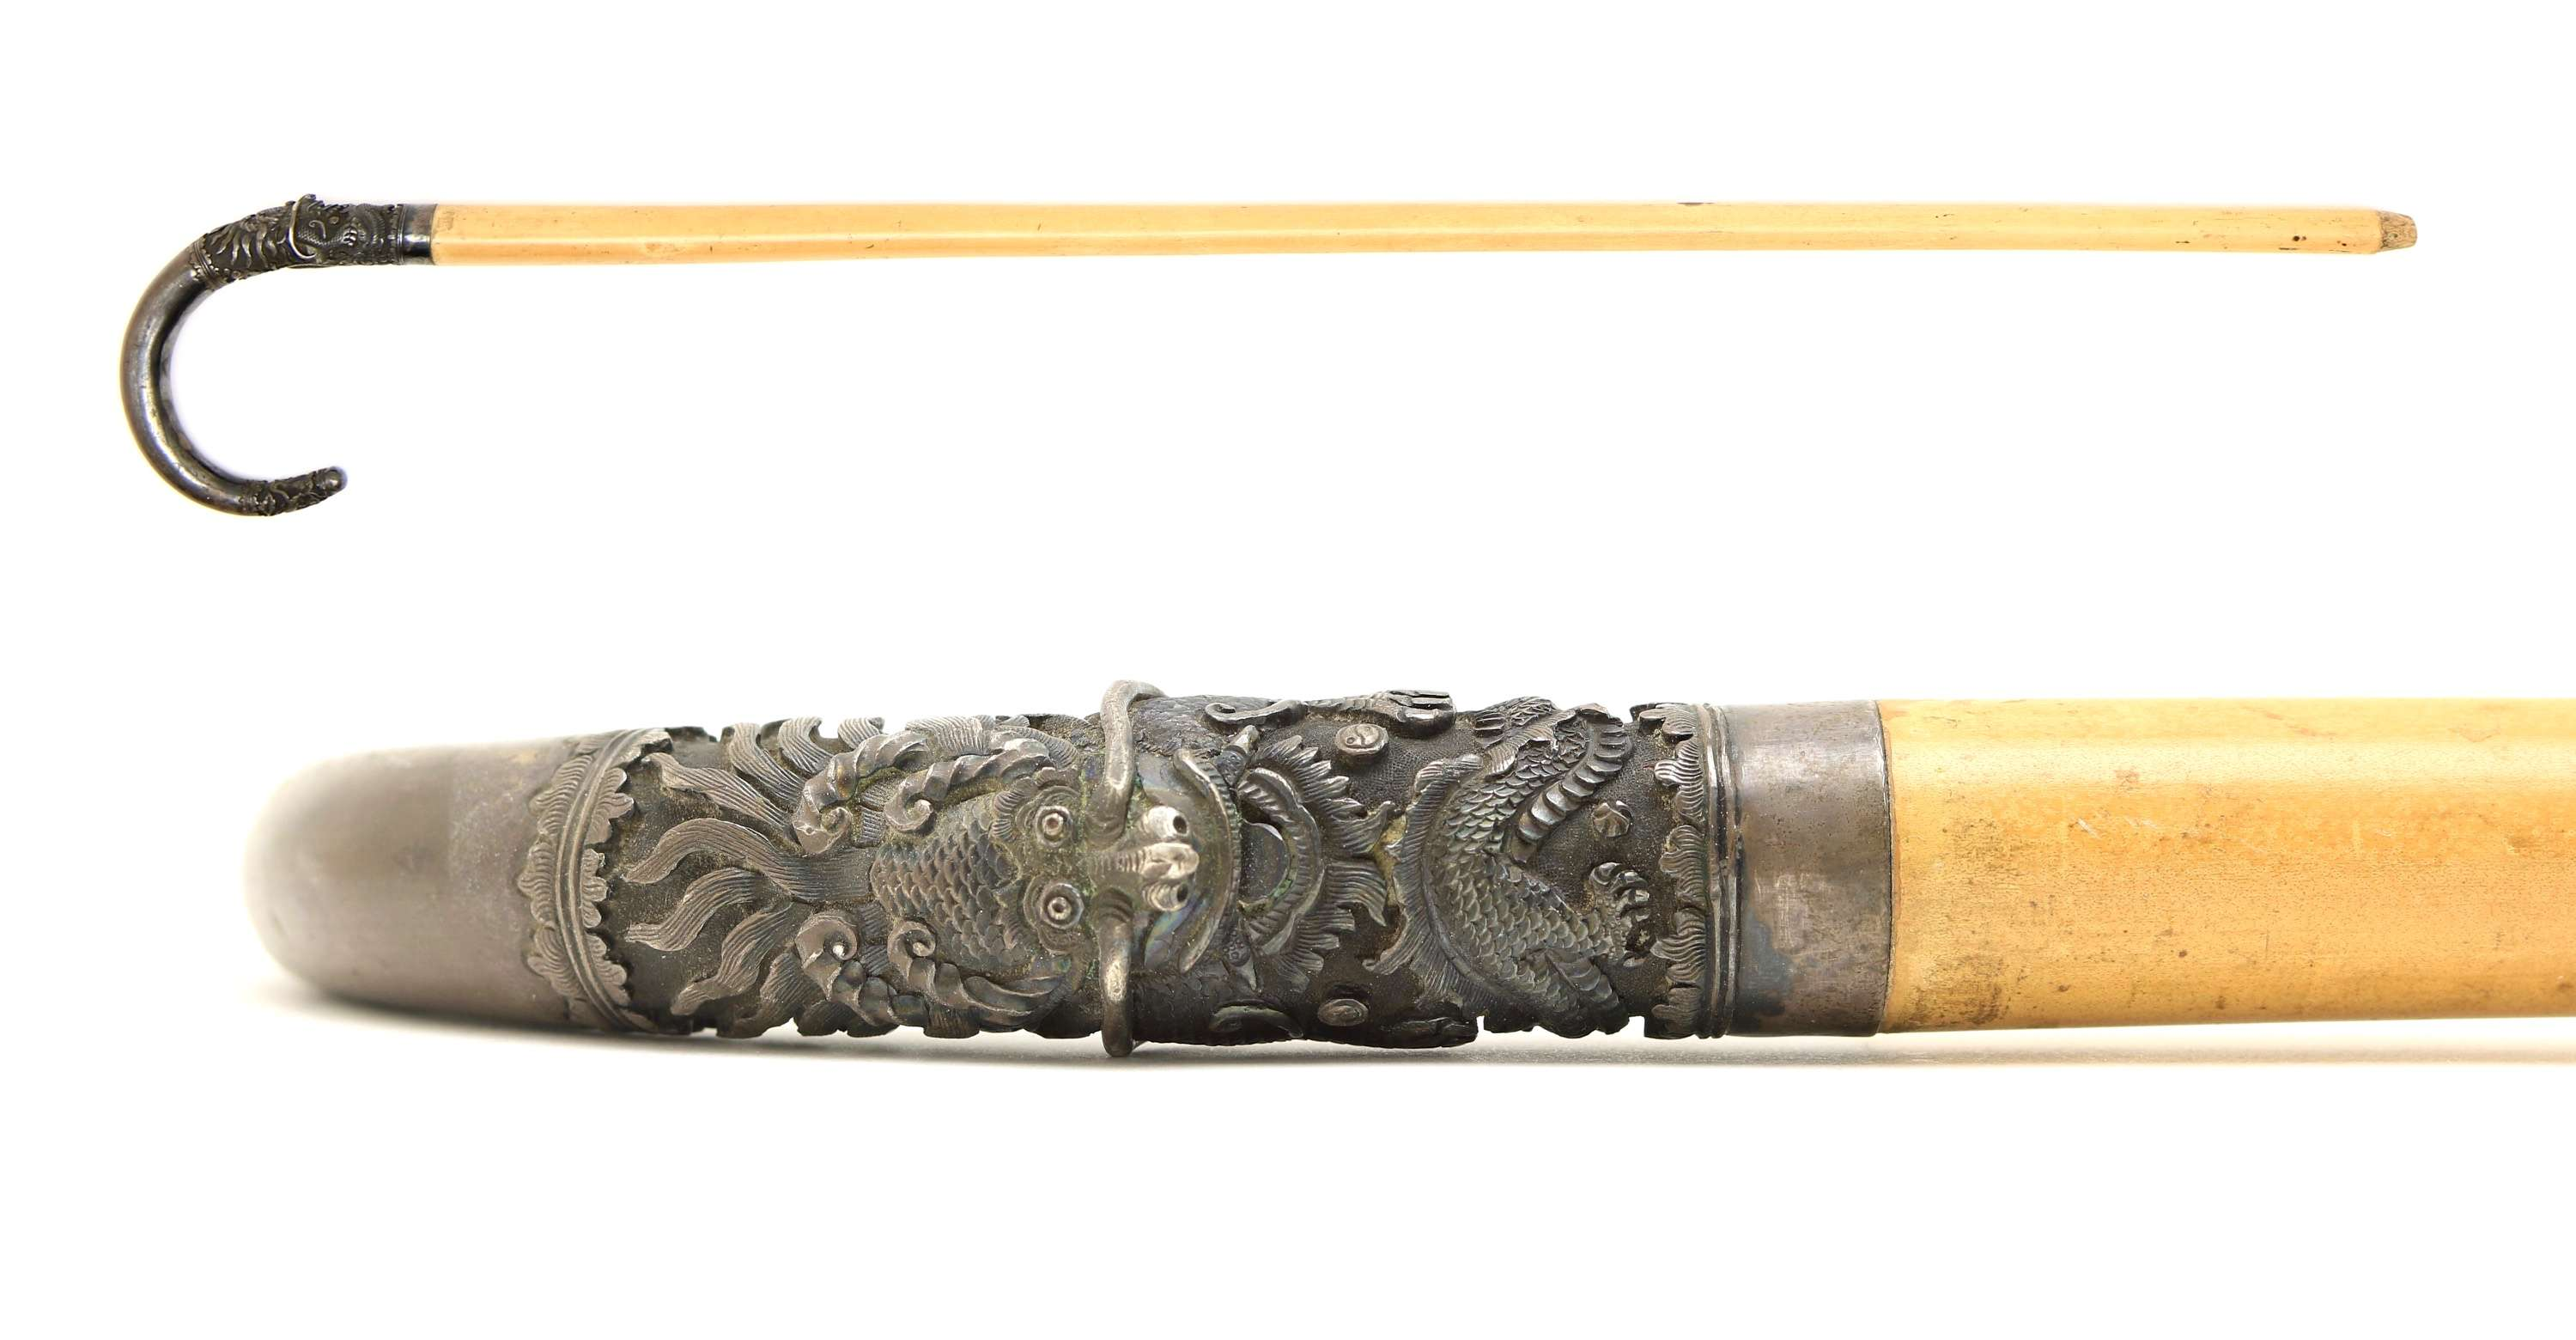 Vietnamese crook handle cane with silver handle